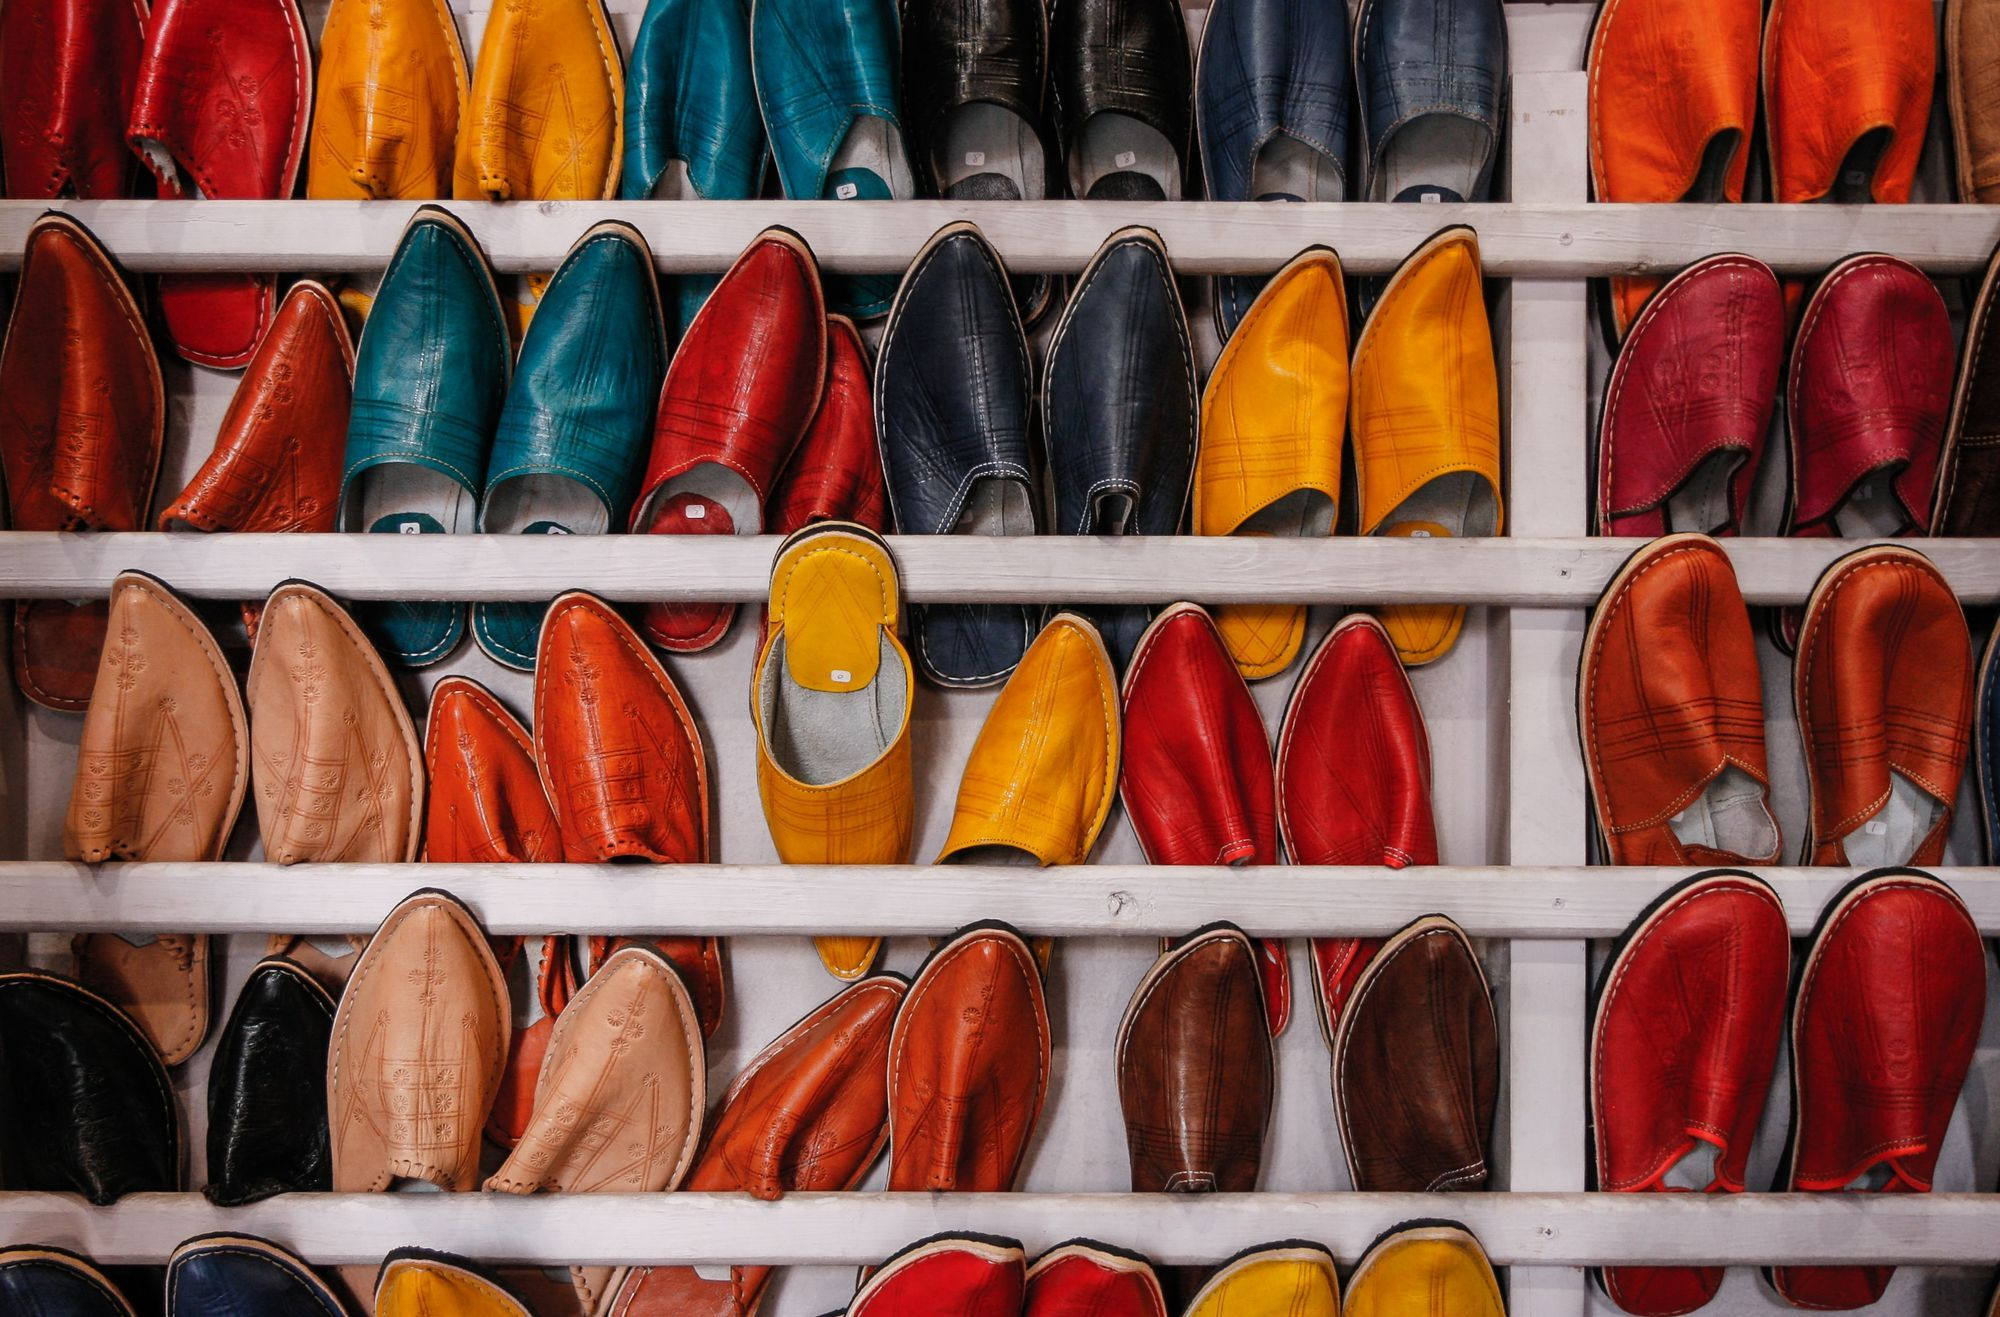 Excess Inventory: How to Liquidate Old and Surplus Stock in Retail